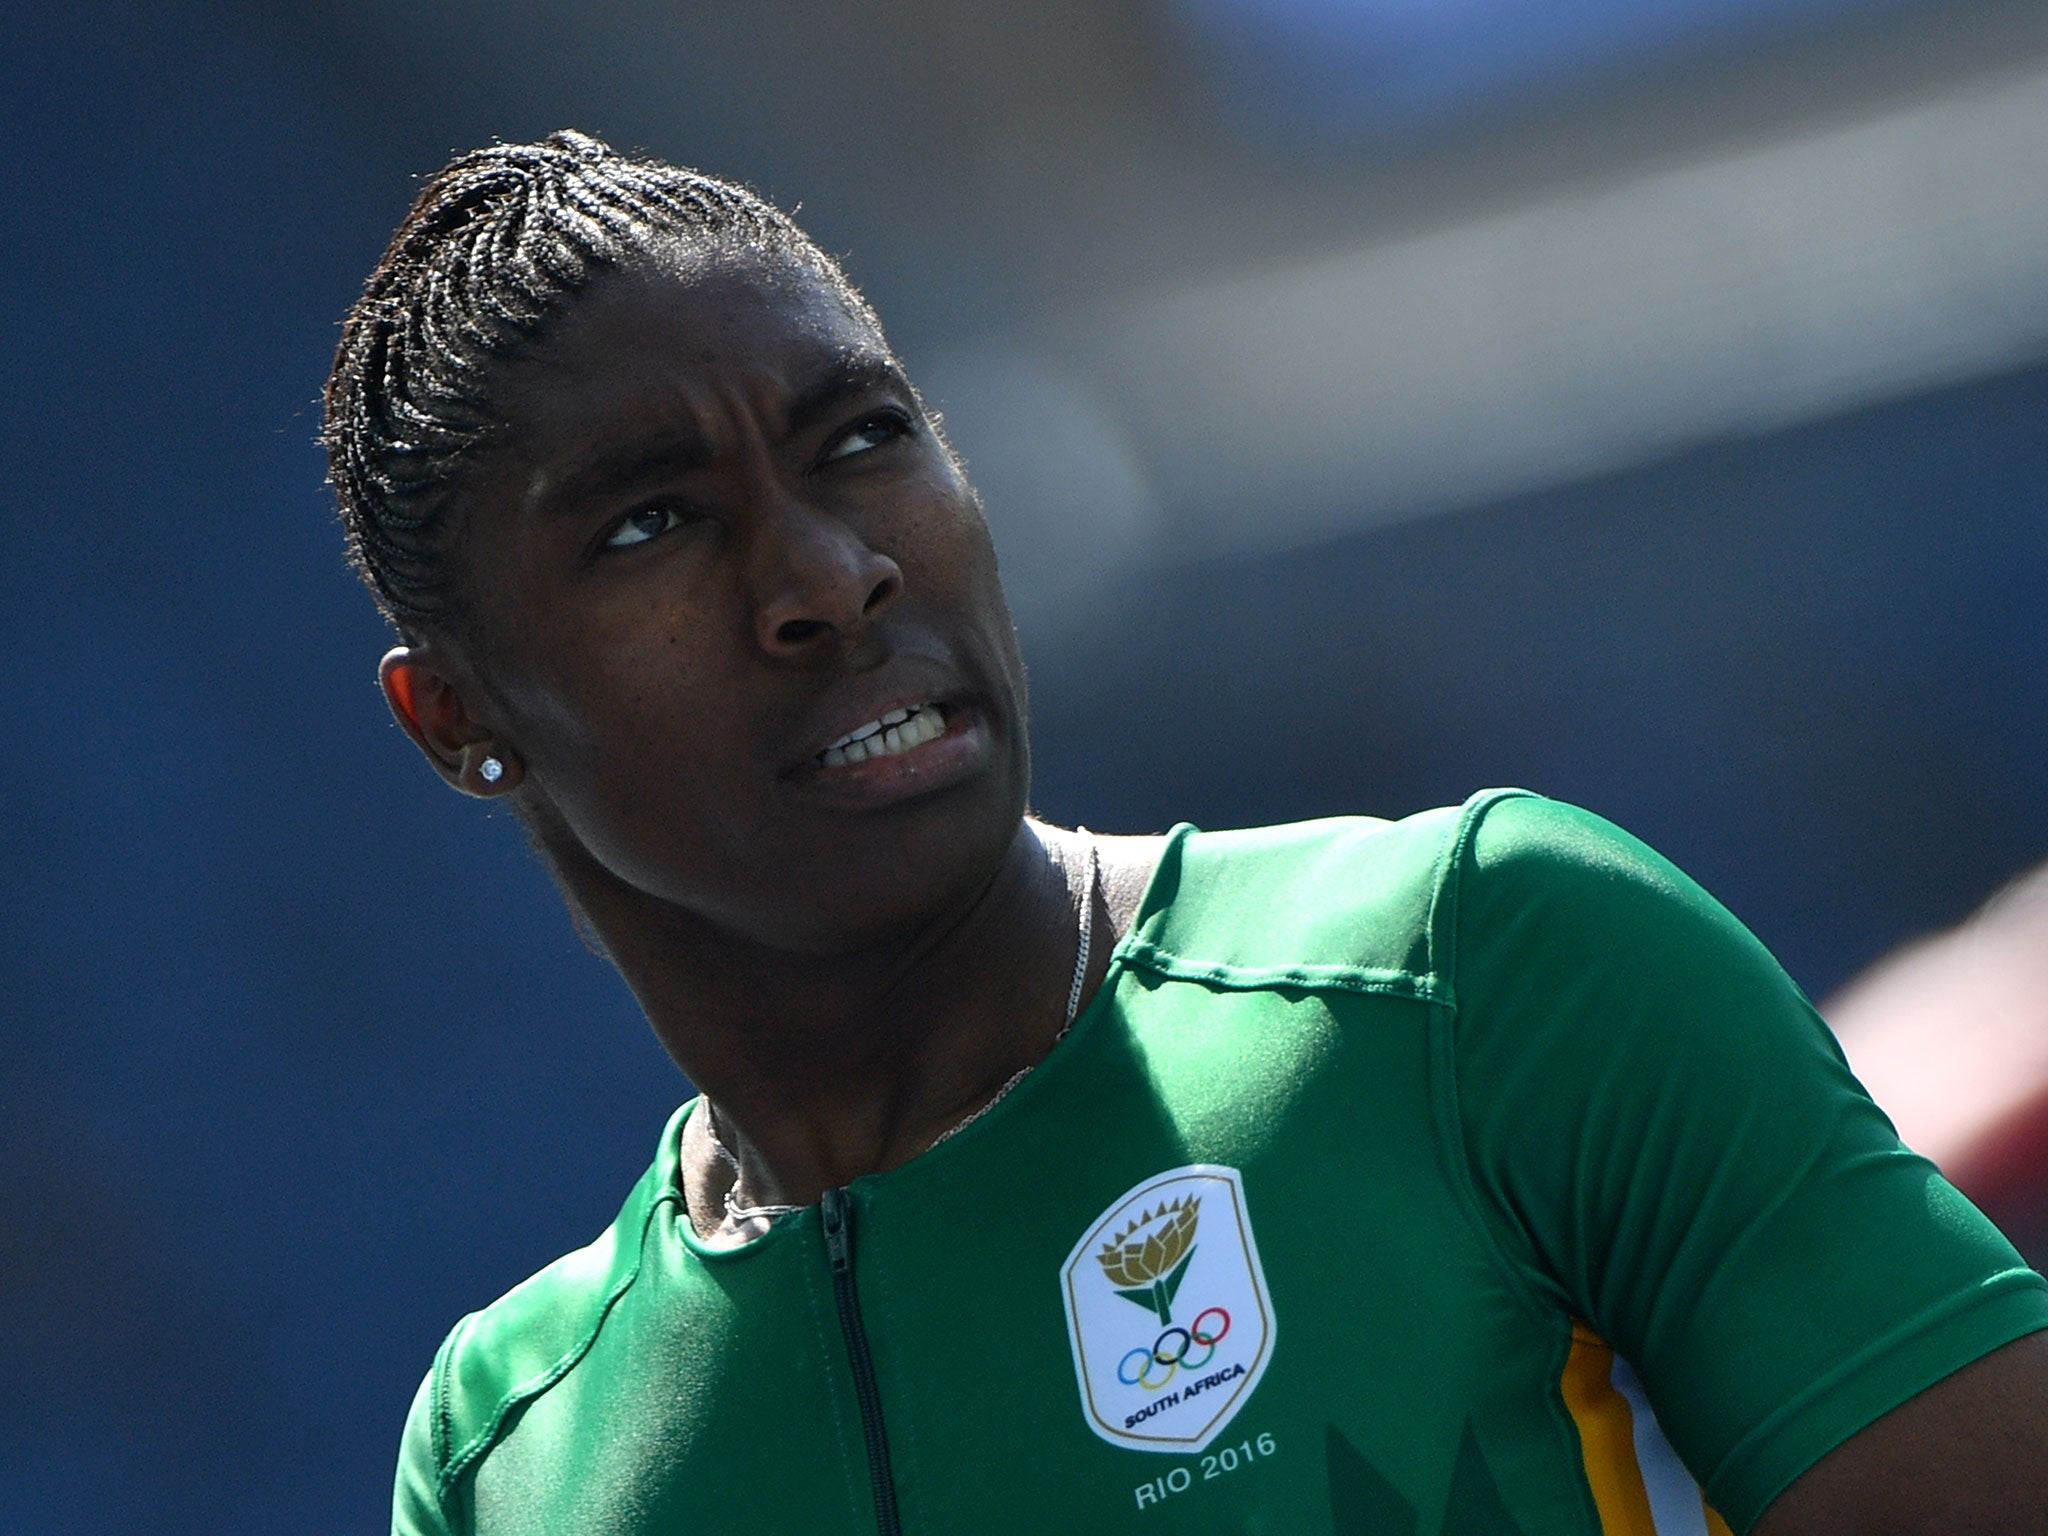 Rio 2016 Caster Semenya Wins And Hides While Sport S Deliberations Go On The Independent